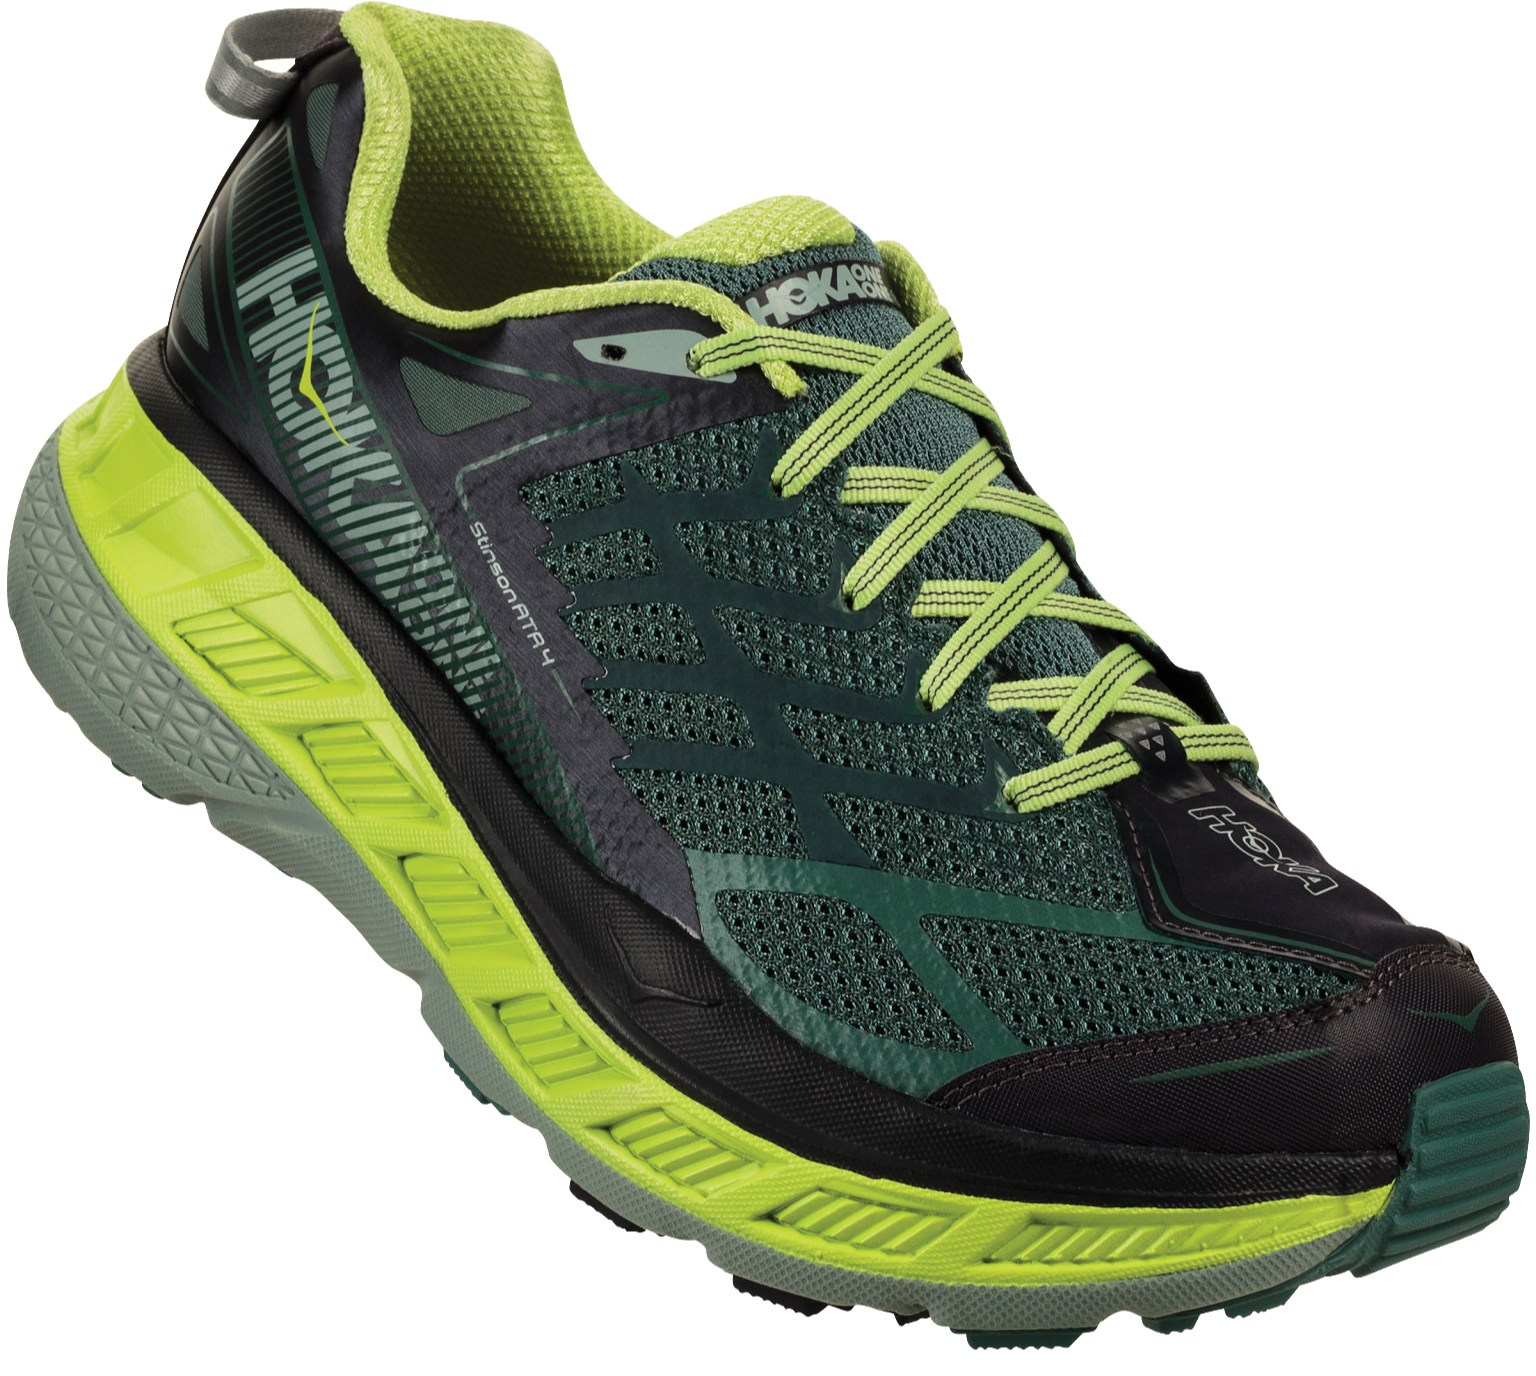 HOKA ONE ONE Stinson ATR 4 Trail-Running Shoes - Men's